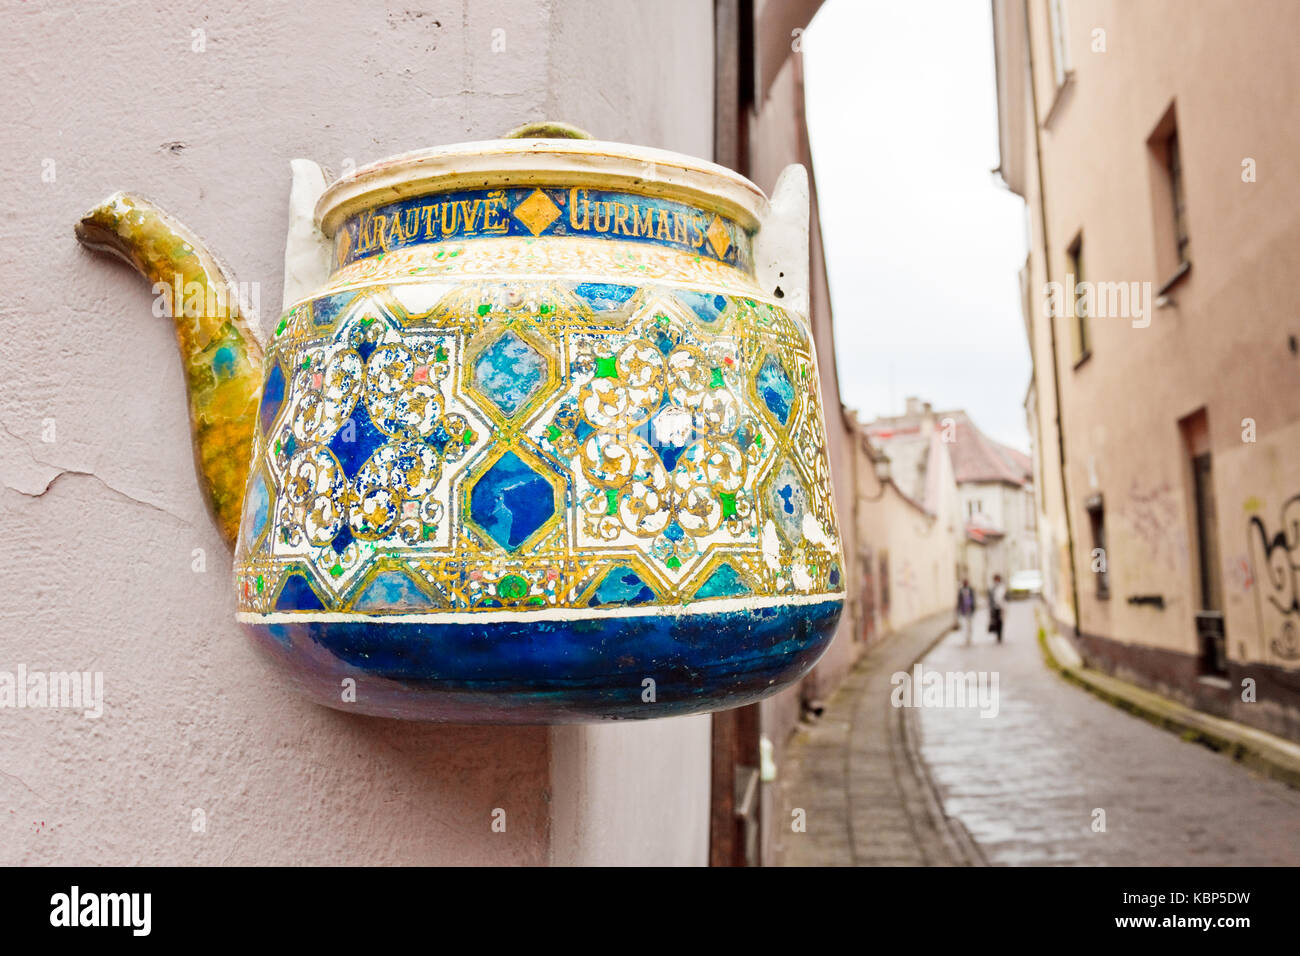 Vilnius, Lithuania - September 15, 2015: Colorful tea pot on a building wall in the old town of Vilnius. - Stock Image